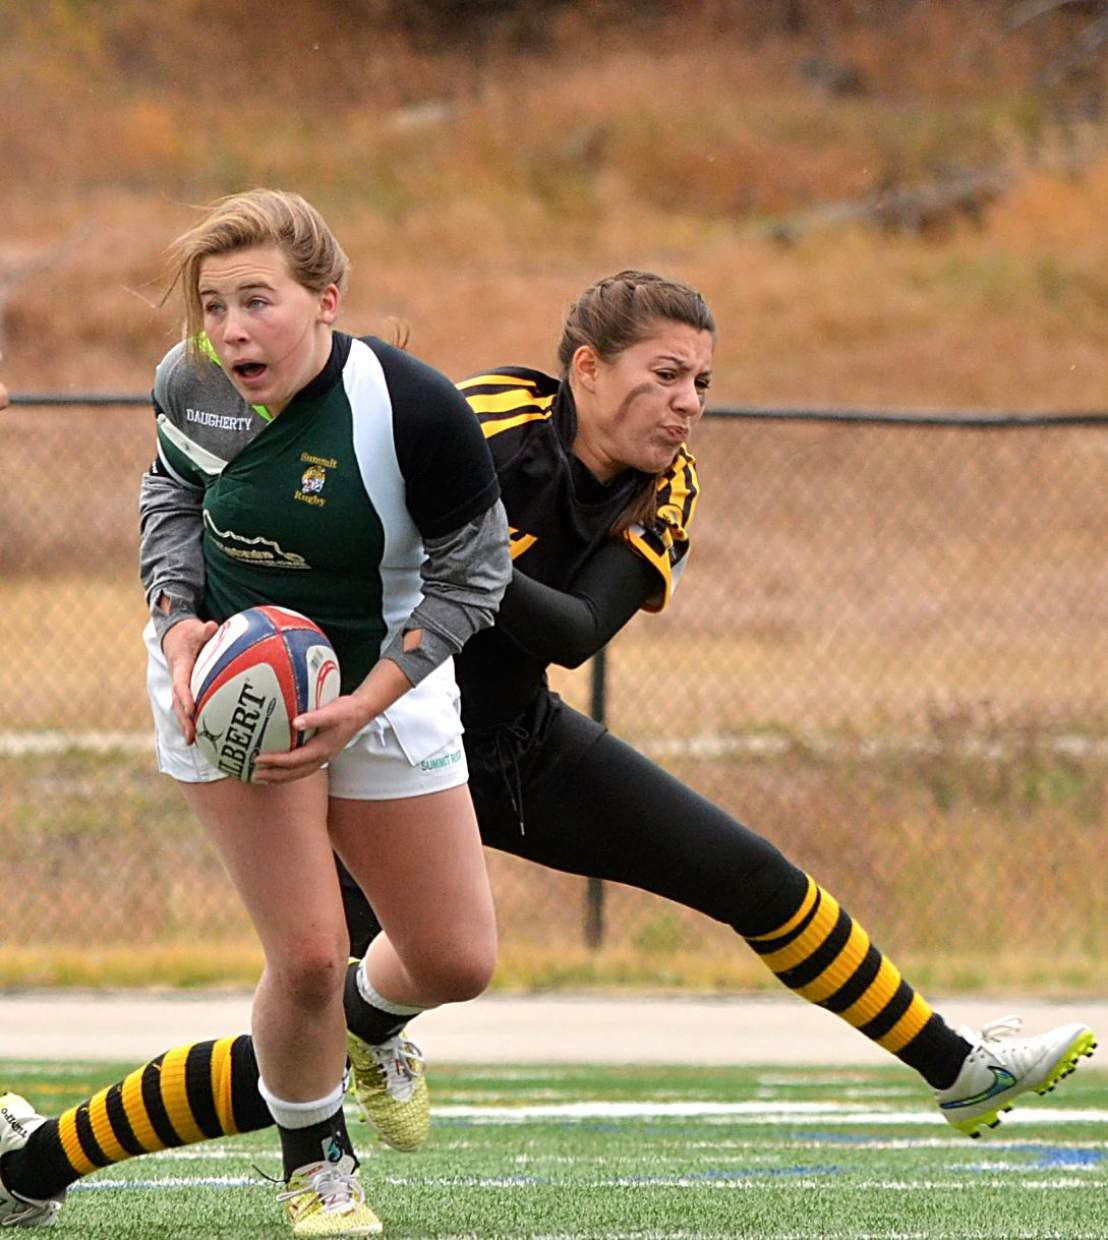 A player on the Summit Rugby green team looks for a pass during a game against Fort Collins at the rugby sevens tournament at Tigers Field on Sept. 24. Like their football counterparts, all rugby players are held to strict concussion protocol despite different equipment and styles of play.